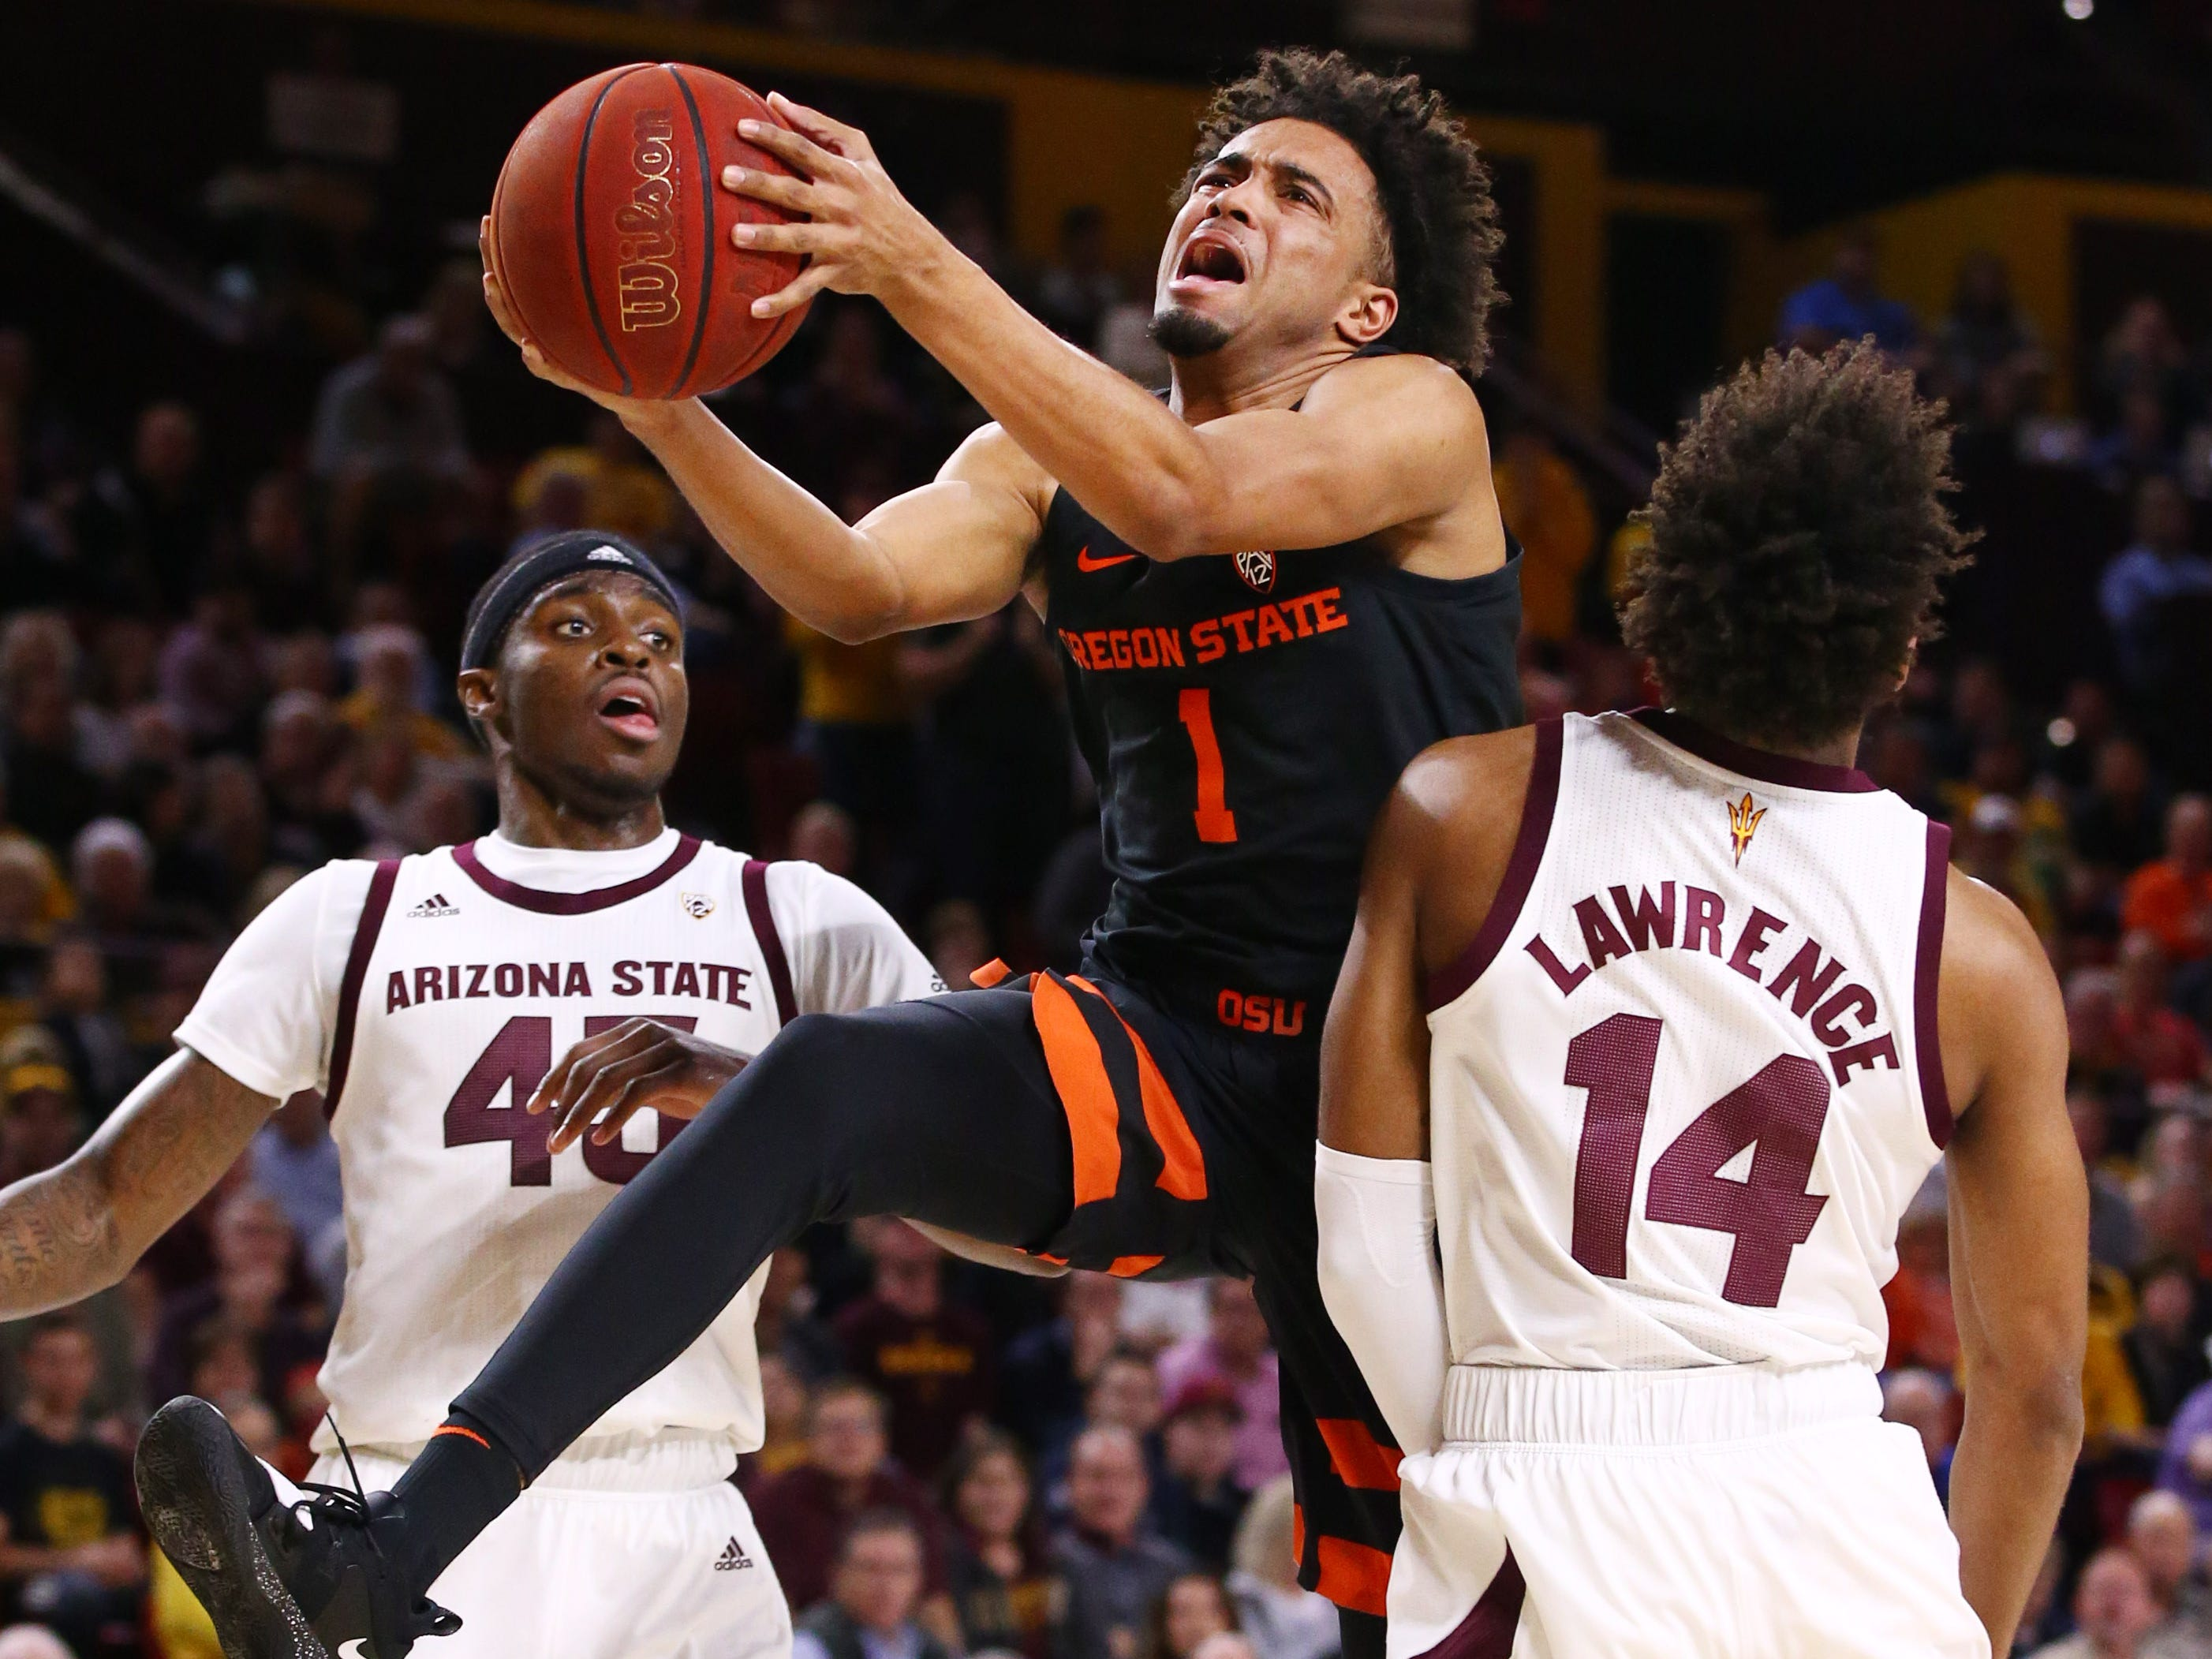 Oregon State Beavers guard Stephen Thompson Jr. is fouled by Arizona State Sun Devils' Kimani Lawrence in the first half on Jan. 17 at Wells Fargo Arena in Tempe.